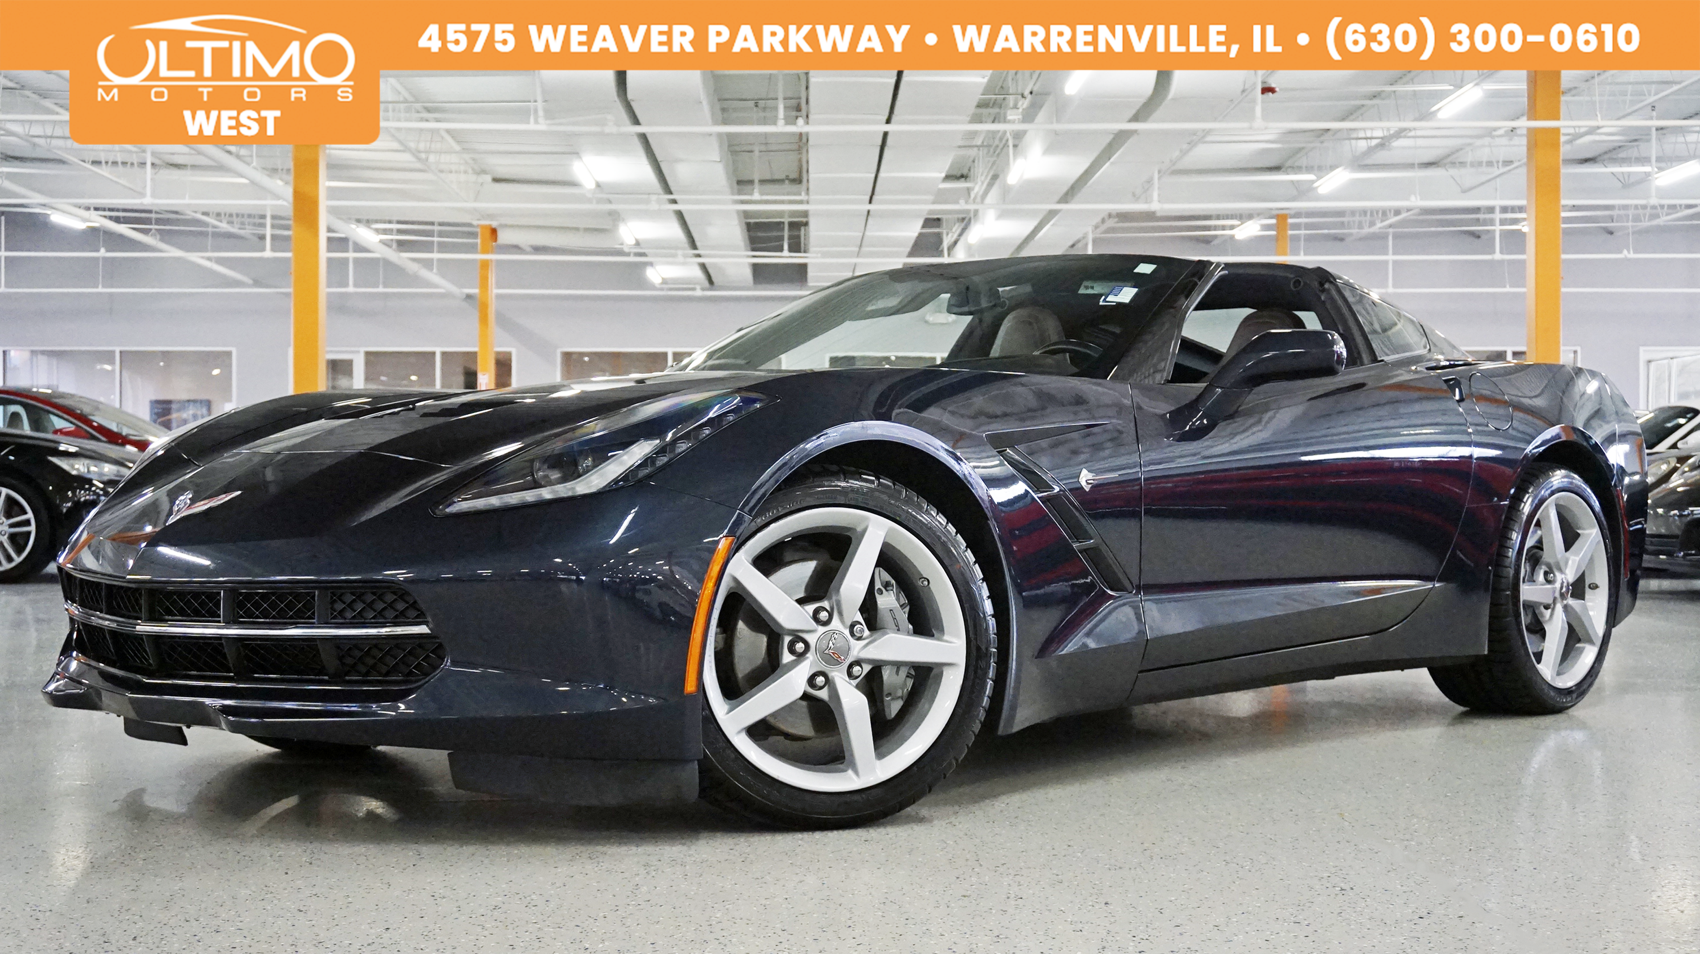 Pre-Owned 2014 Chevrolet Corvette Stingray 3LT Navi, Rear Camera, Heated & Ventilated Seats, 1-Owner